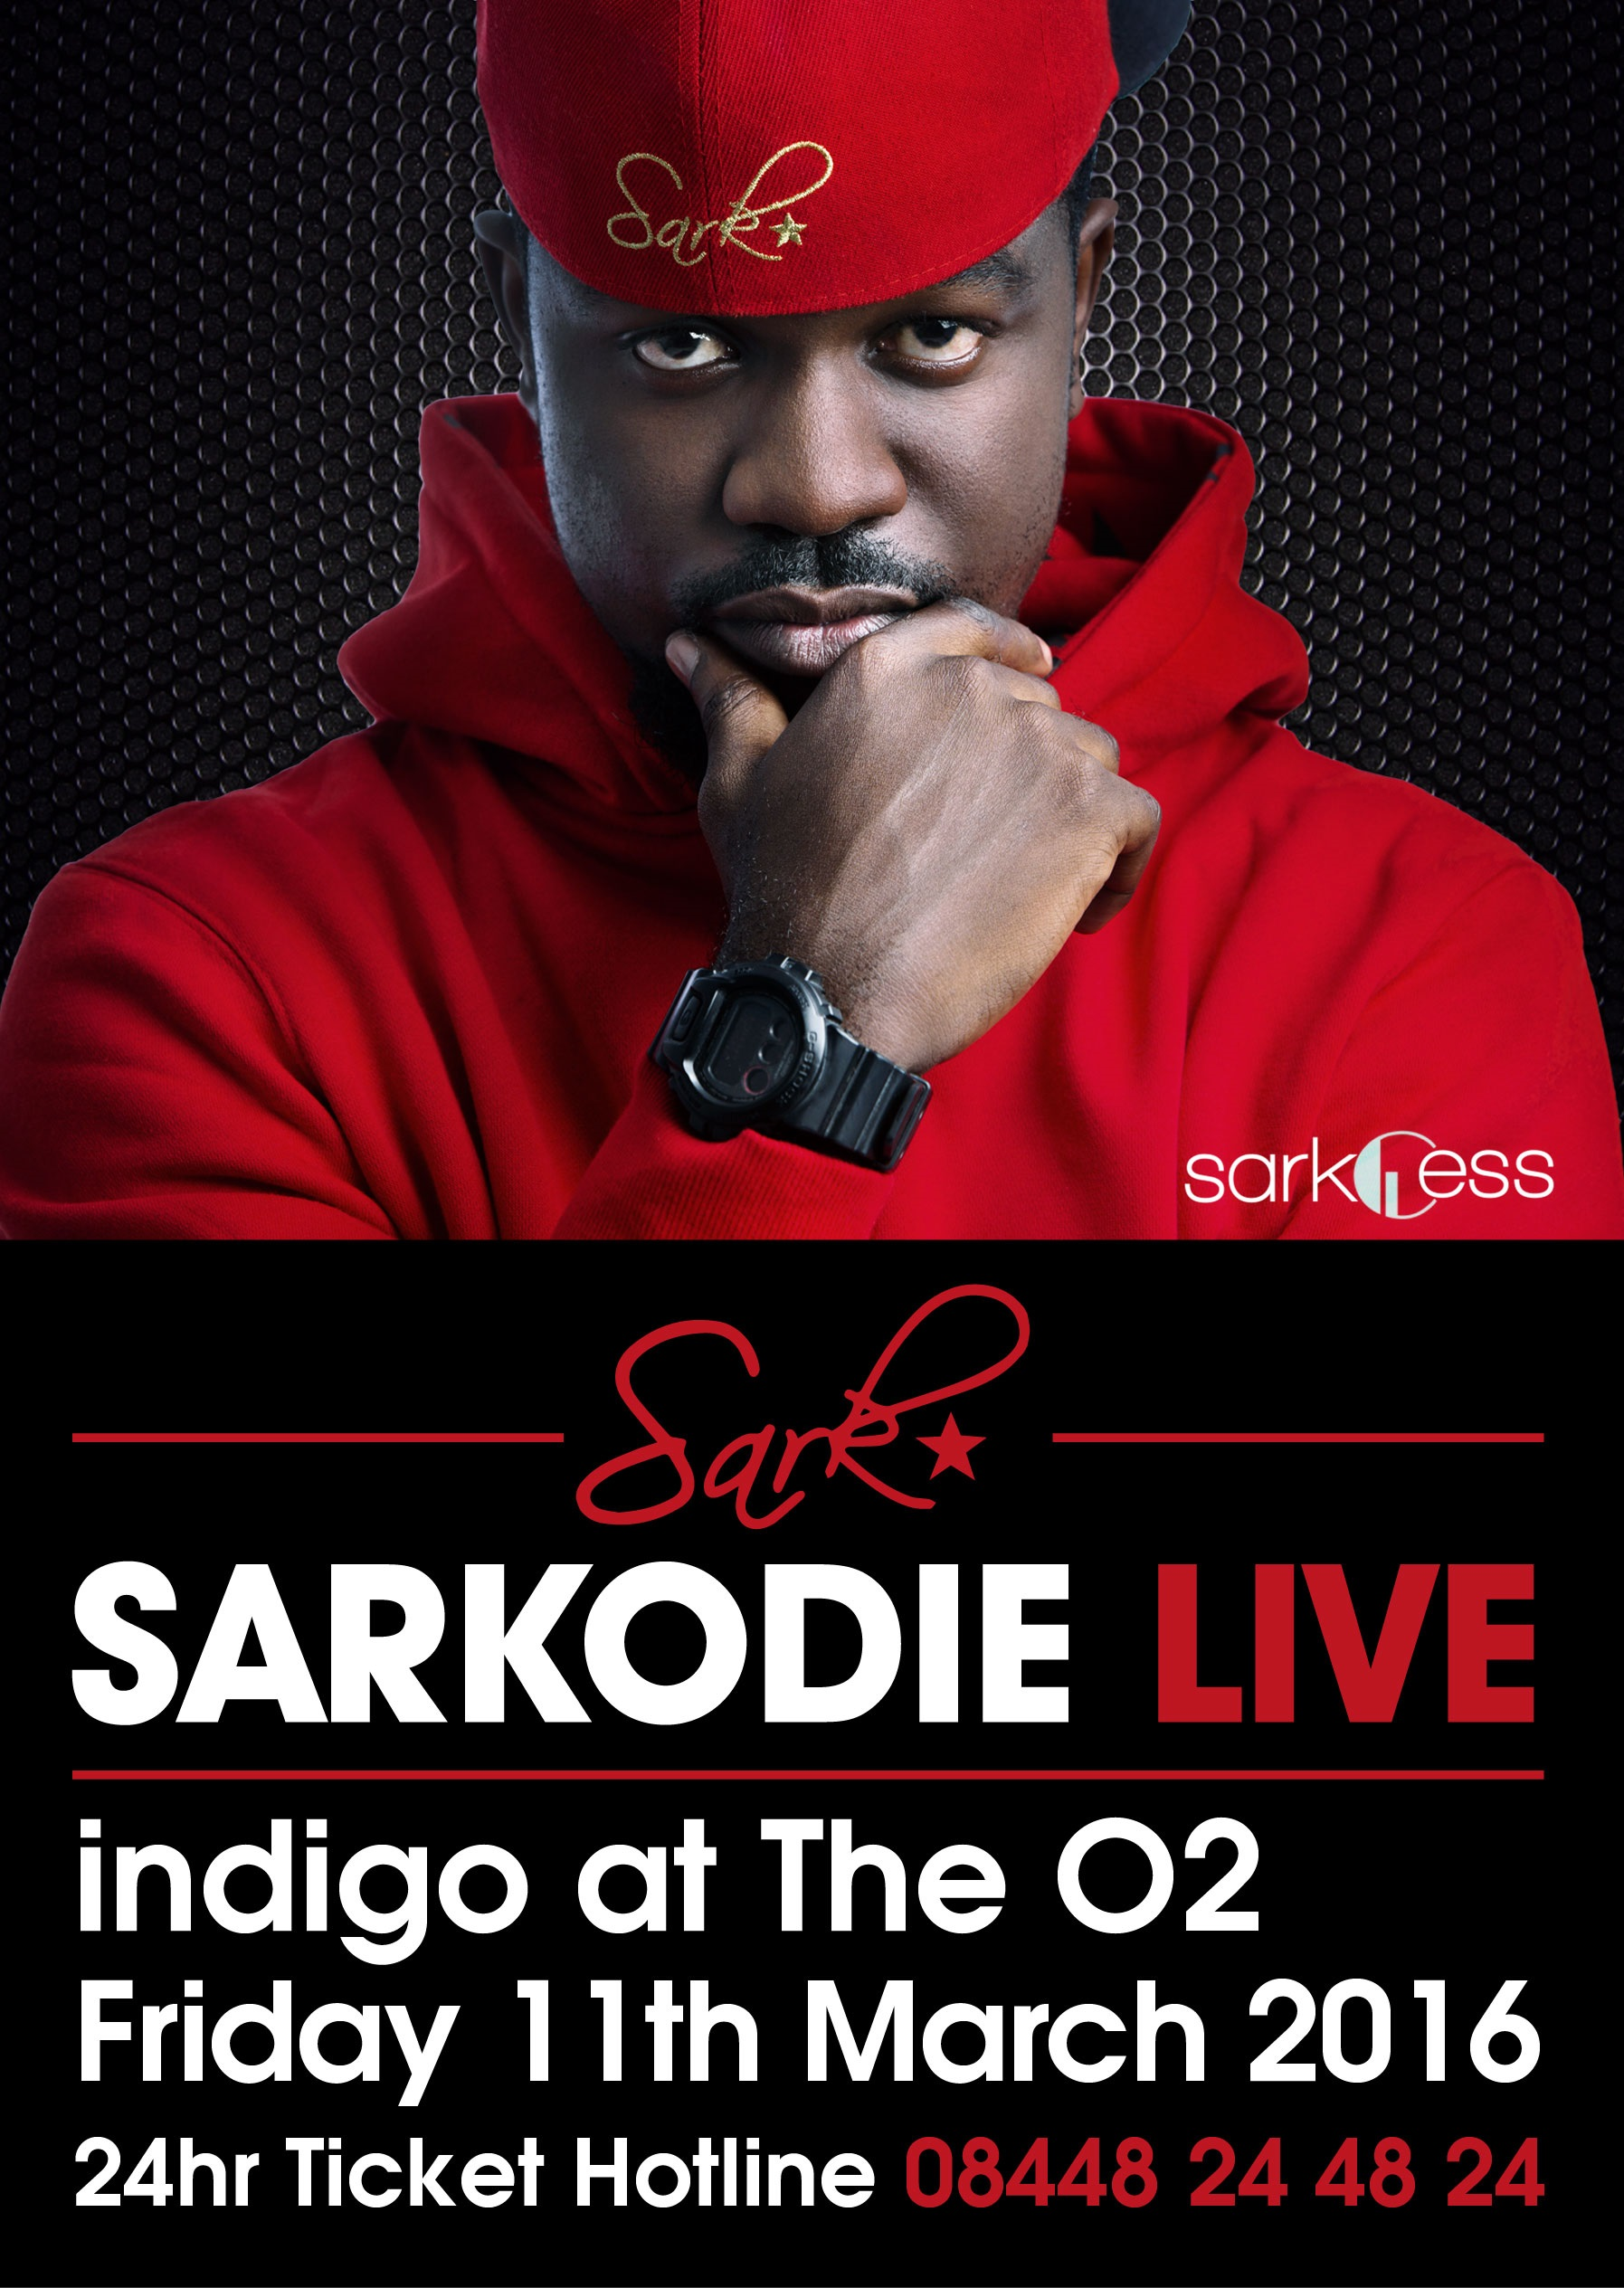 GHANA'S 59th INDEPENDENCE WITH SARKODIE LIVE